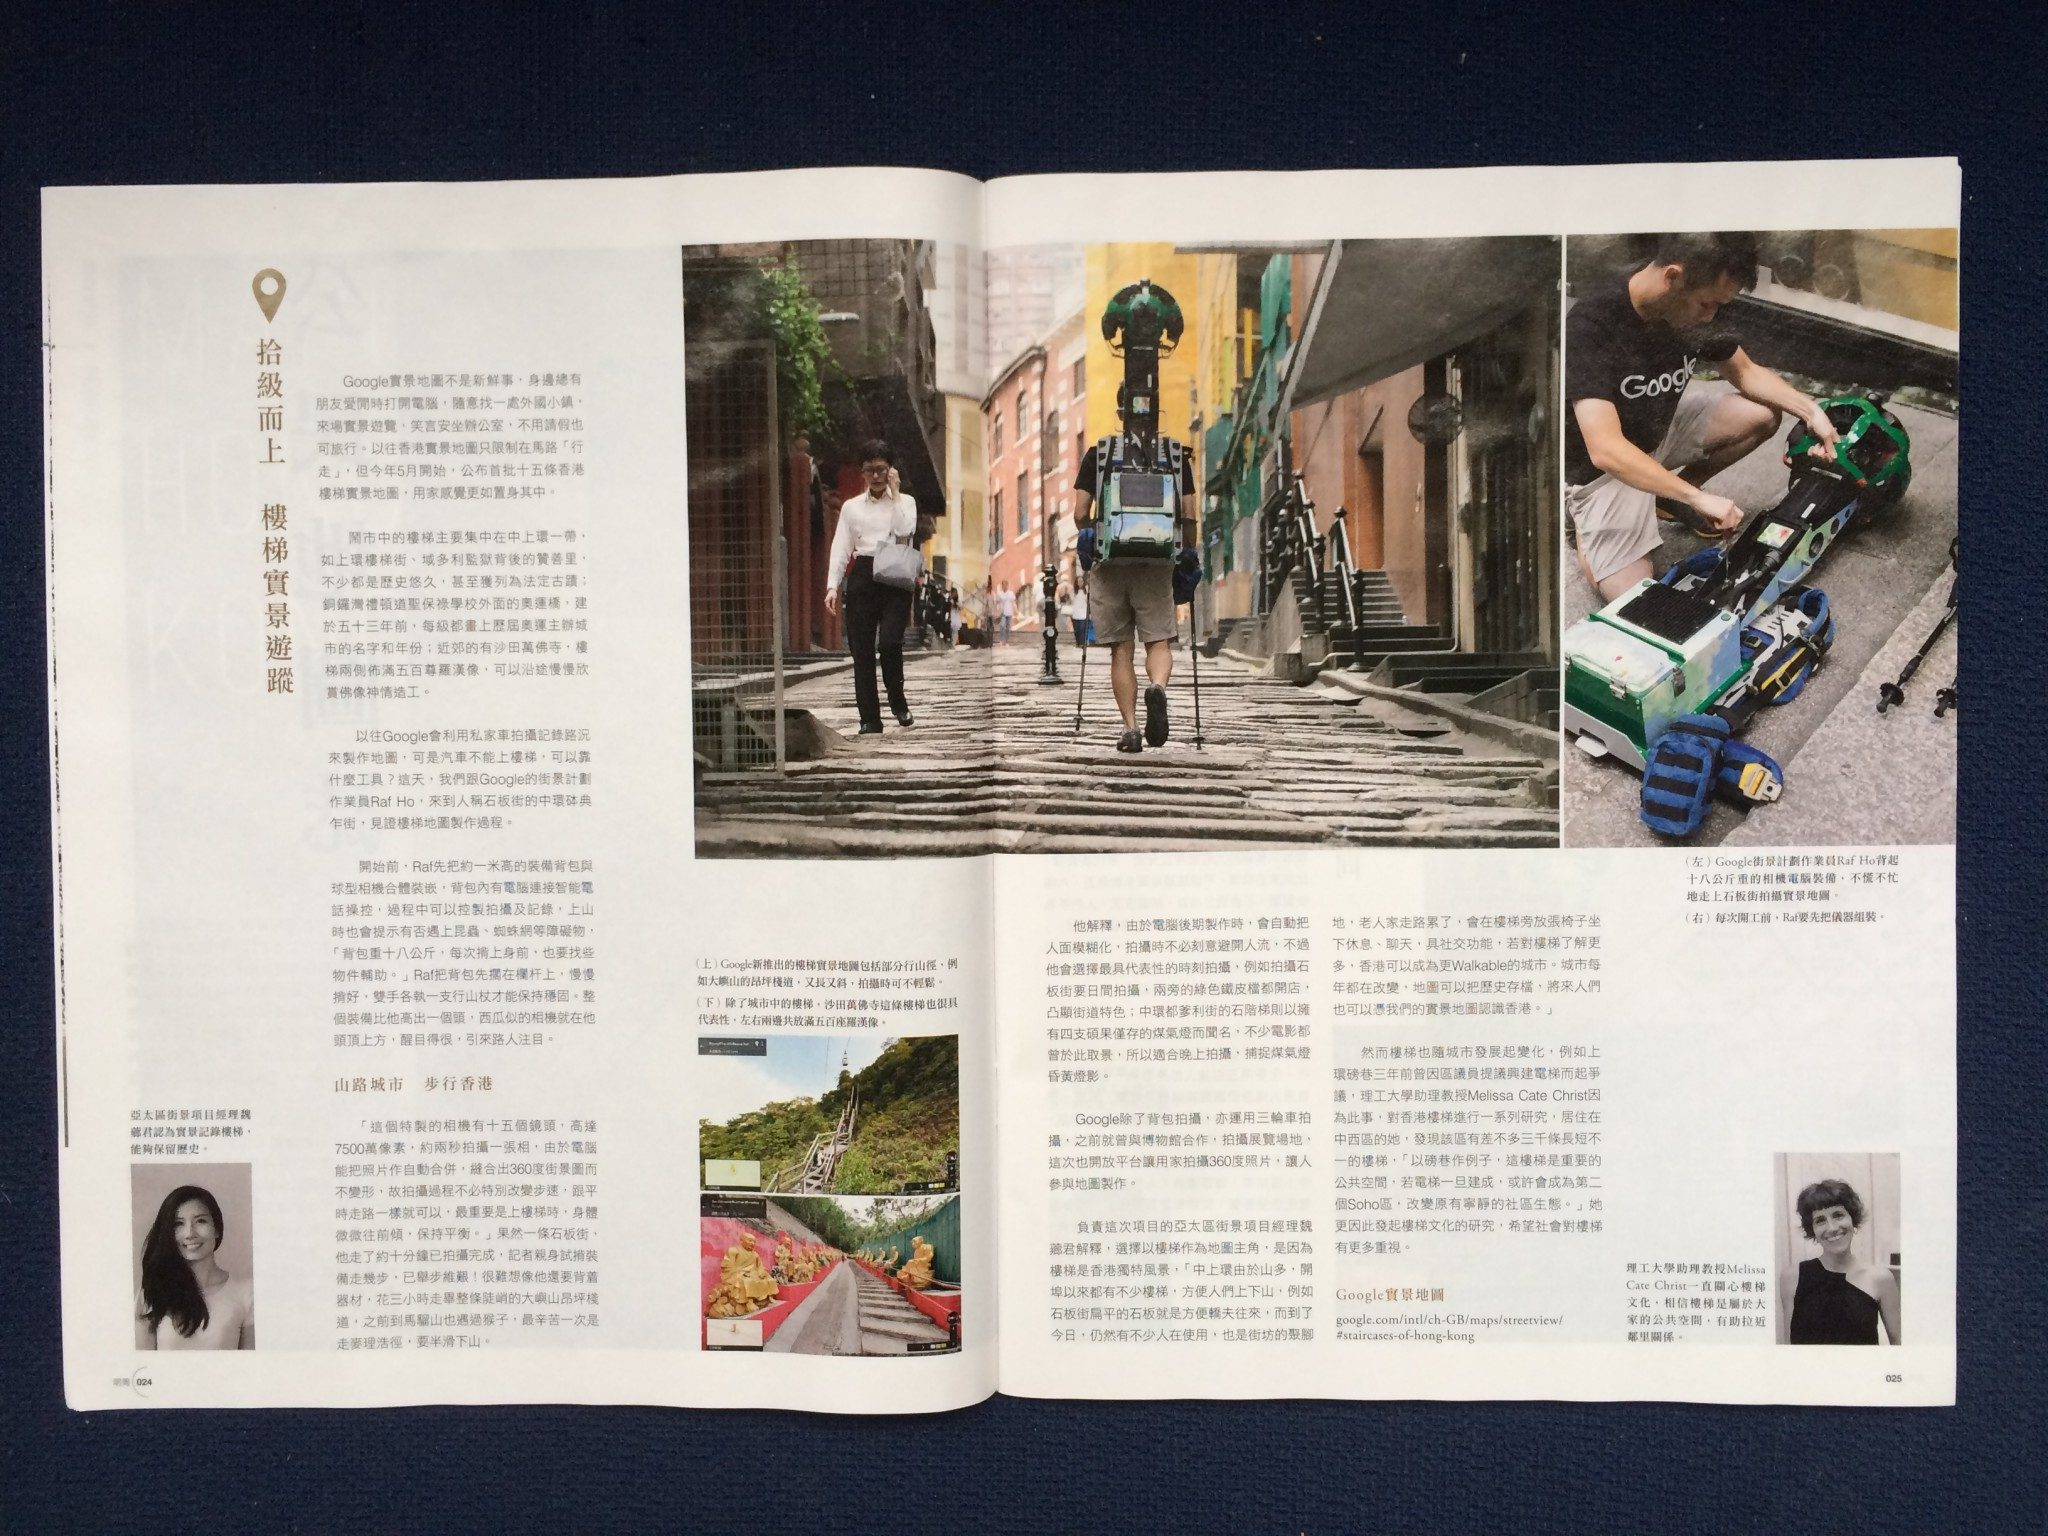 Ming Pao's report on citizen mapping movement in Hong Kong